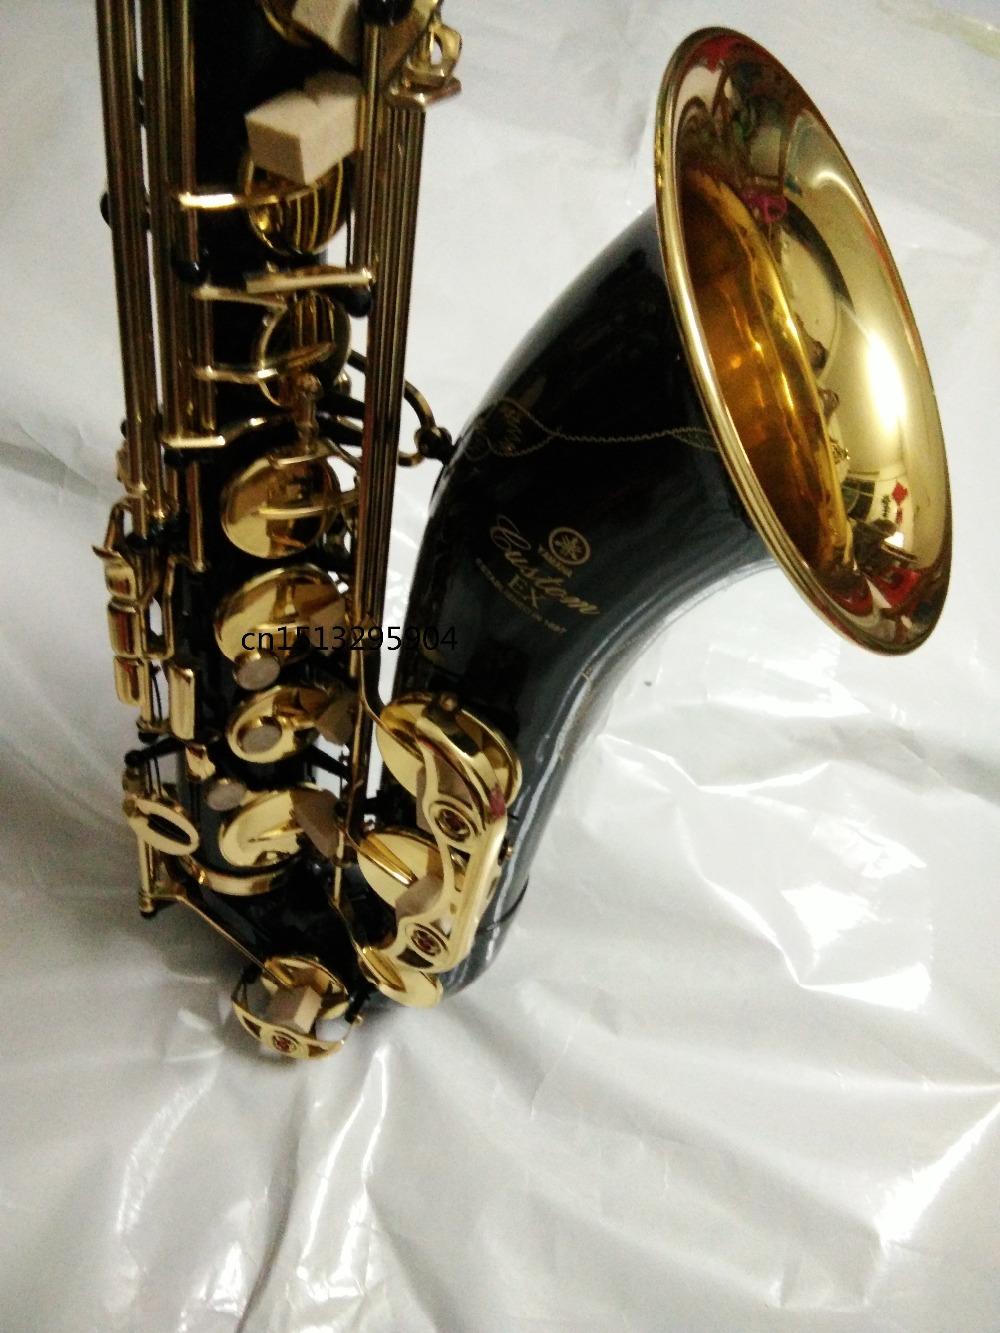 tenor saxophone instrument New high quality Sax paint Gold Tenor saxophone Perfect sound quality free delivery tenor saxophone instrument new selmer high quality saxophone tenor sax antique copper free shipping saxophone